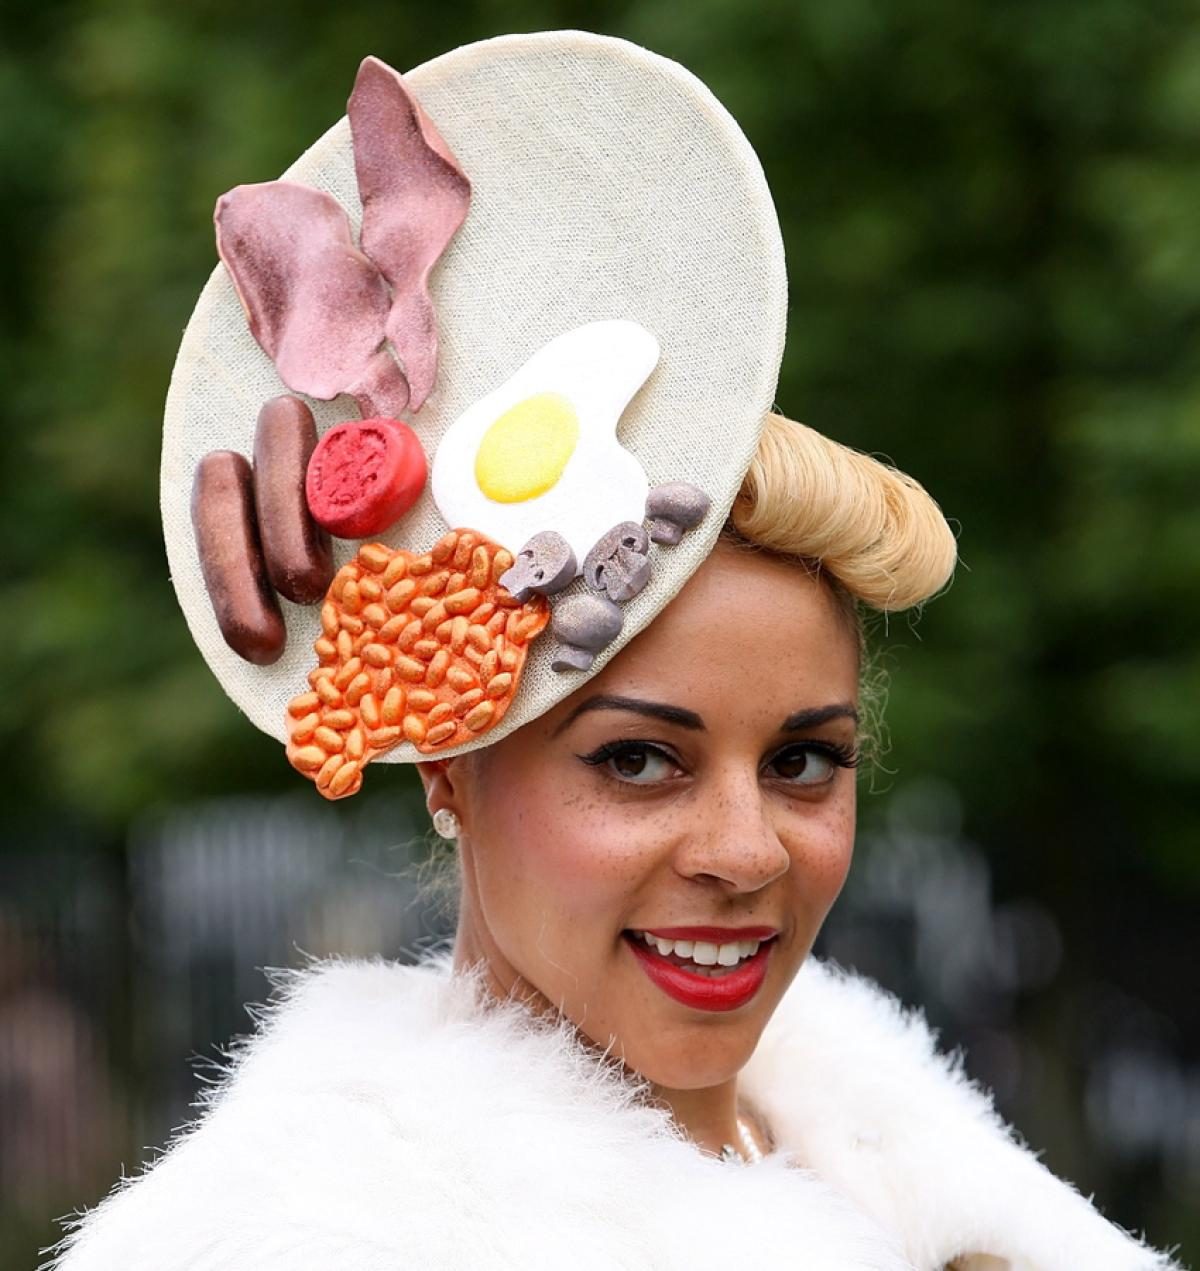 ascot hats royal ascot 2012 - photos - royal ascot 2012: outrageous hats - ny daily VZXIDSN